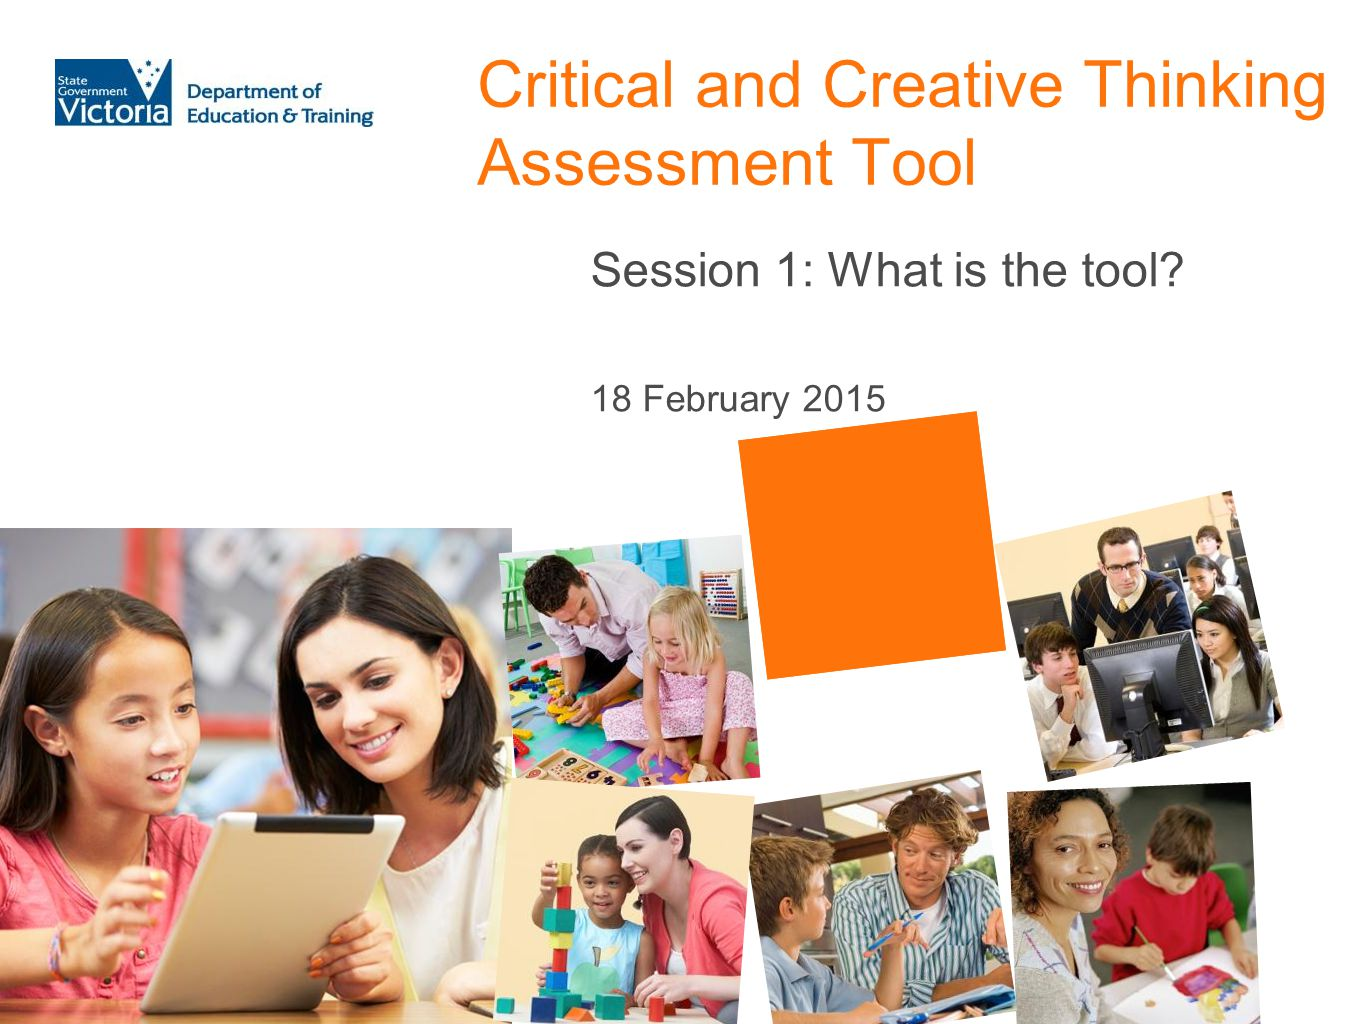 Critical and Creative Thinking Assessment Tool